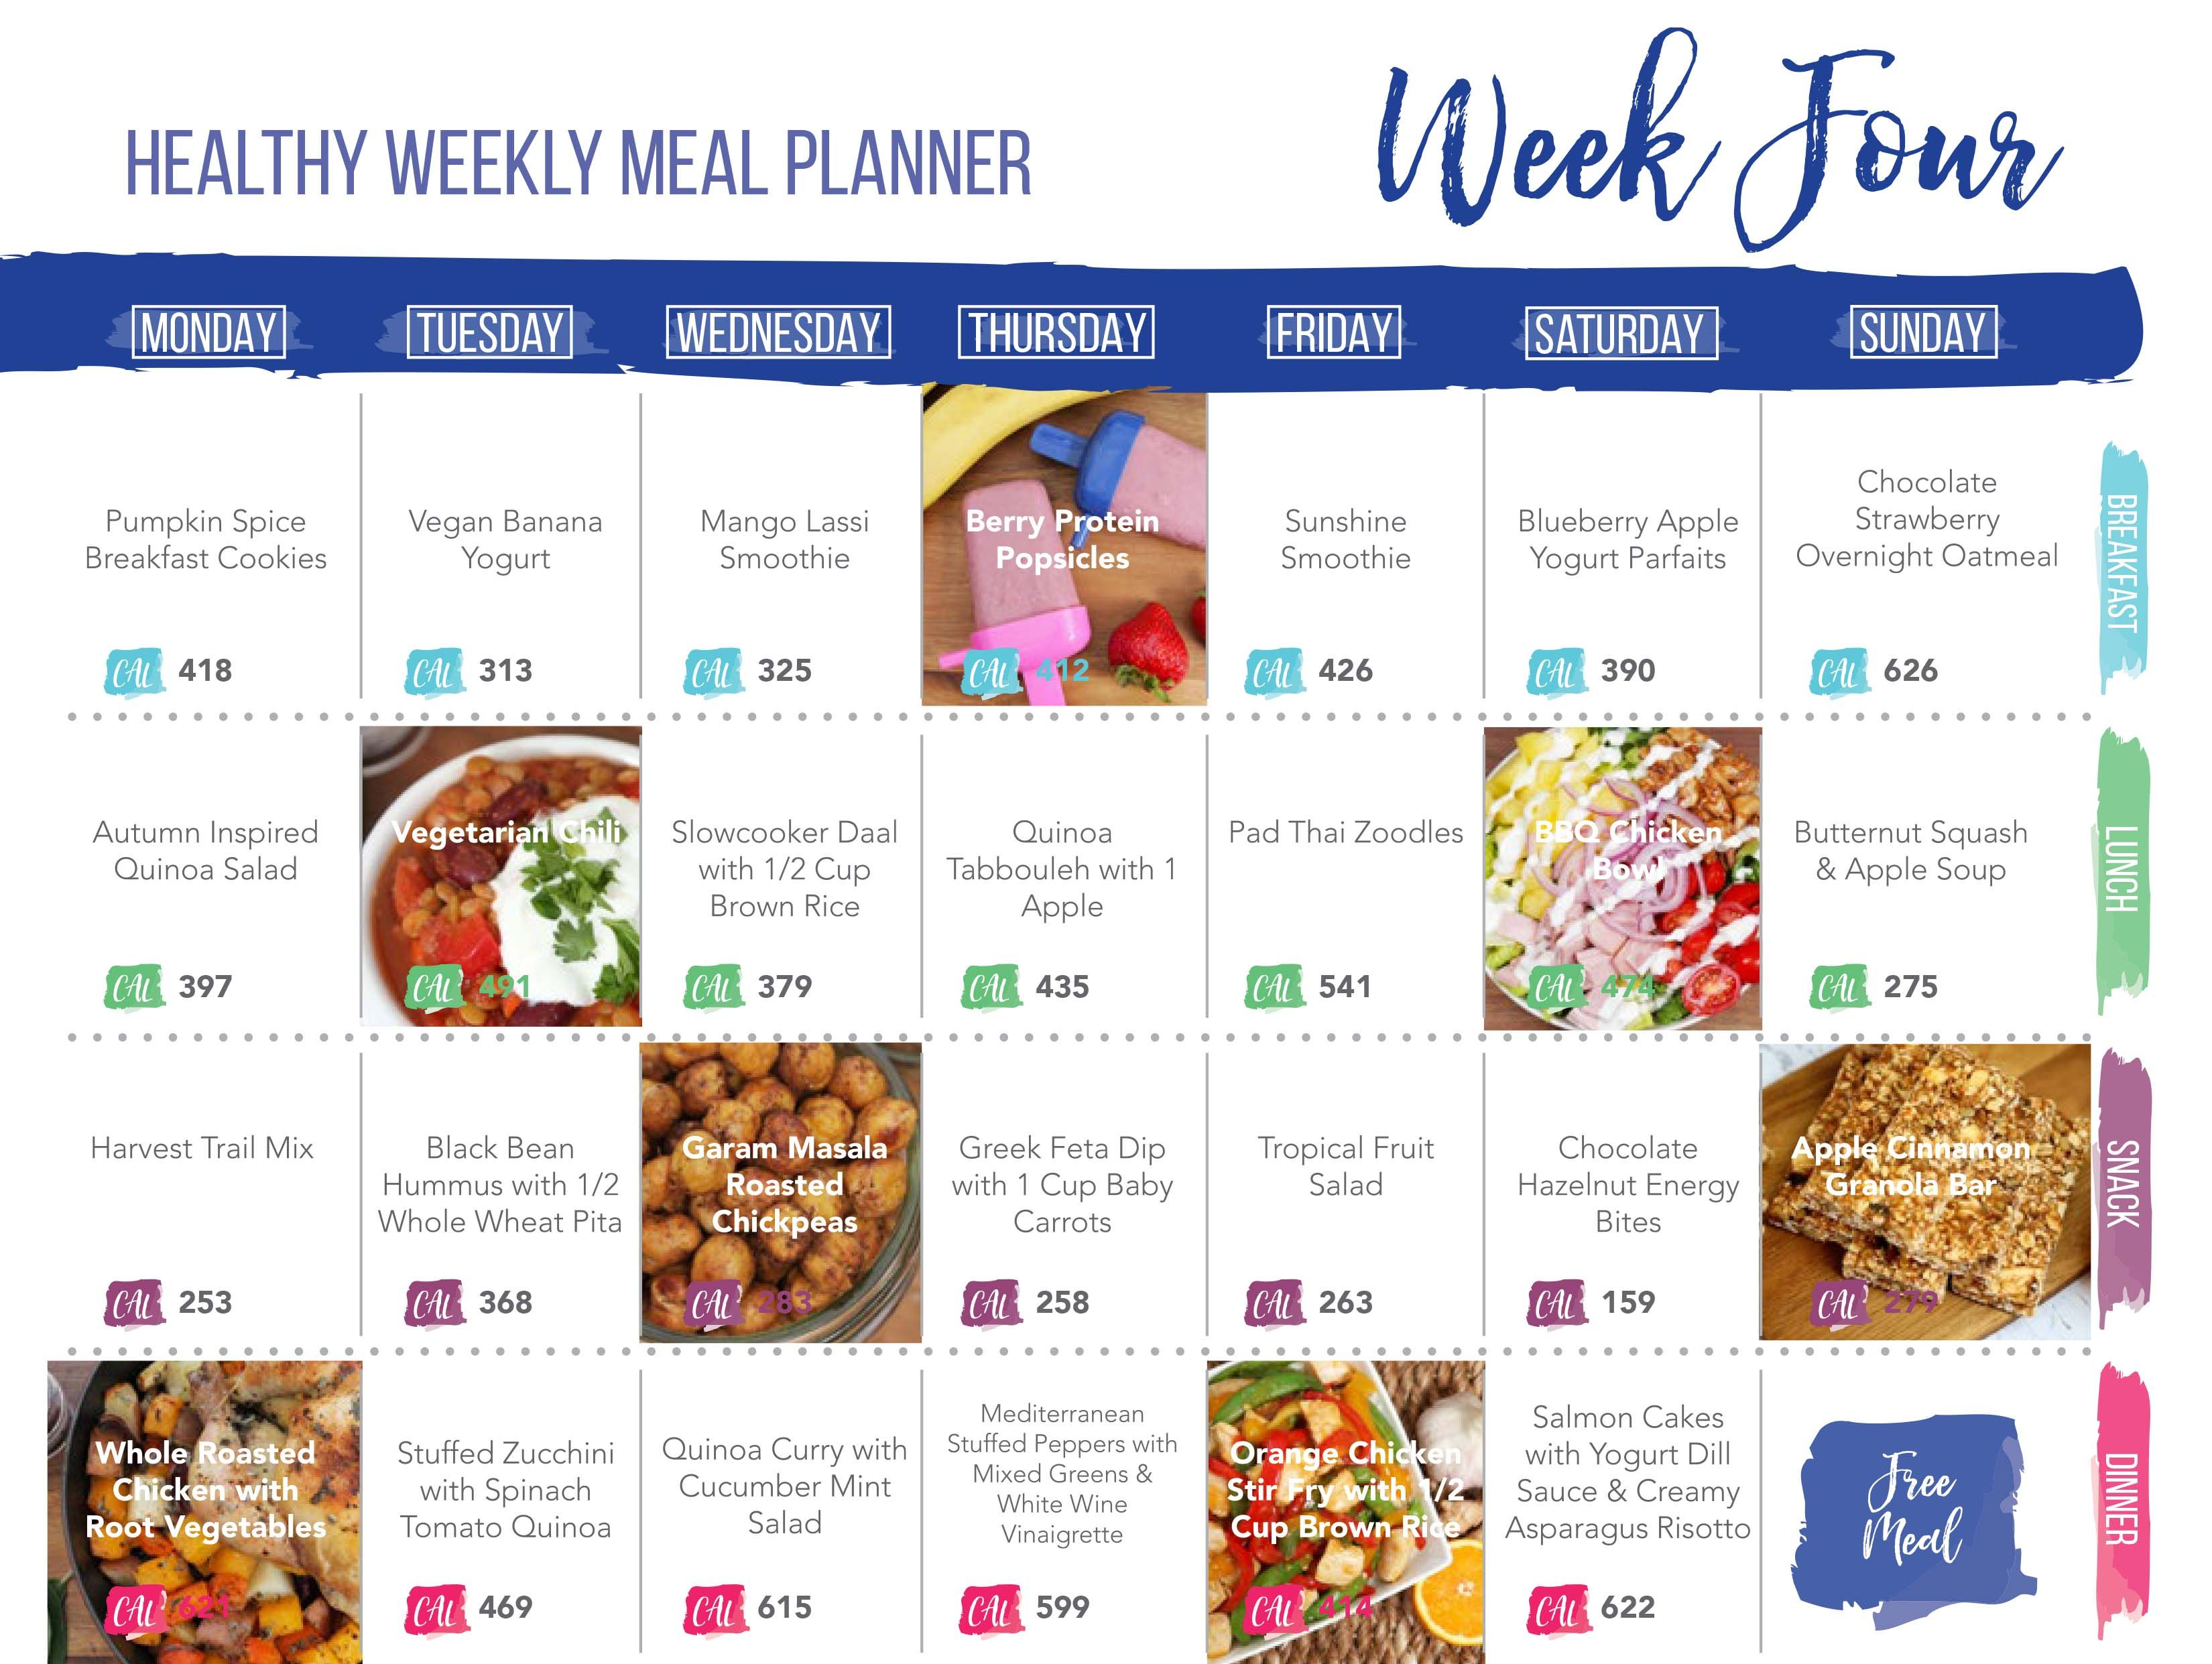 Healthy Meal Plan Week Four Week FourS Menu Includes My